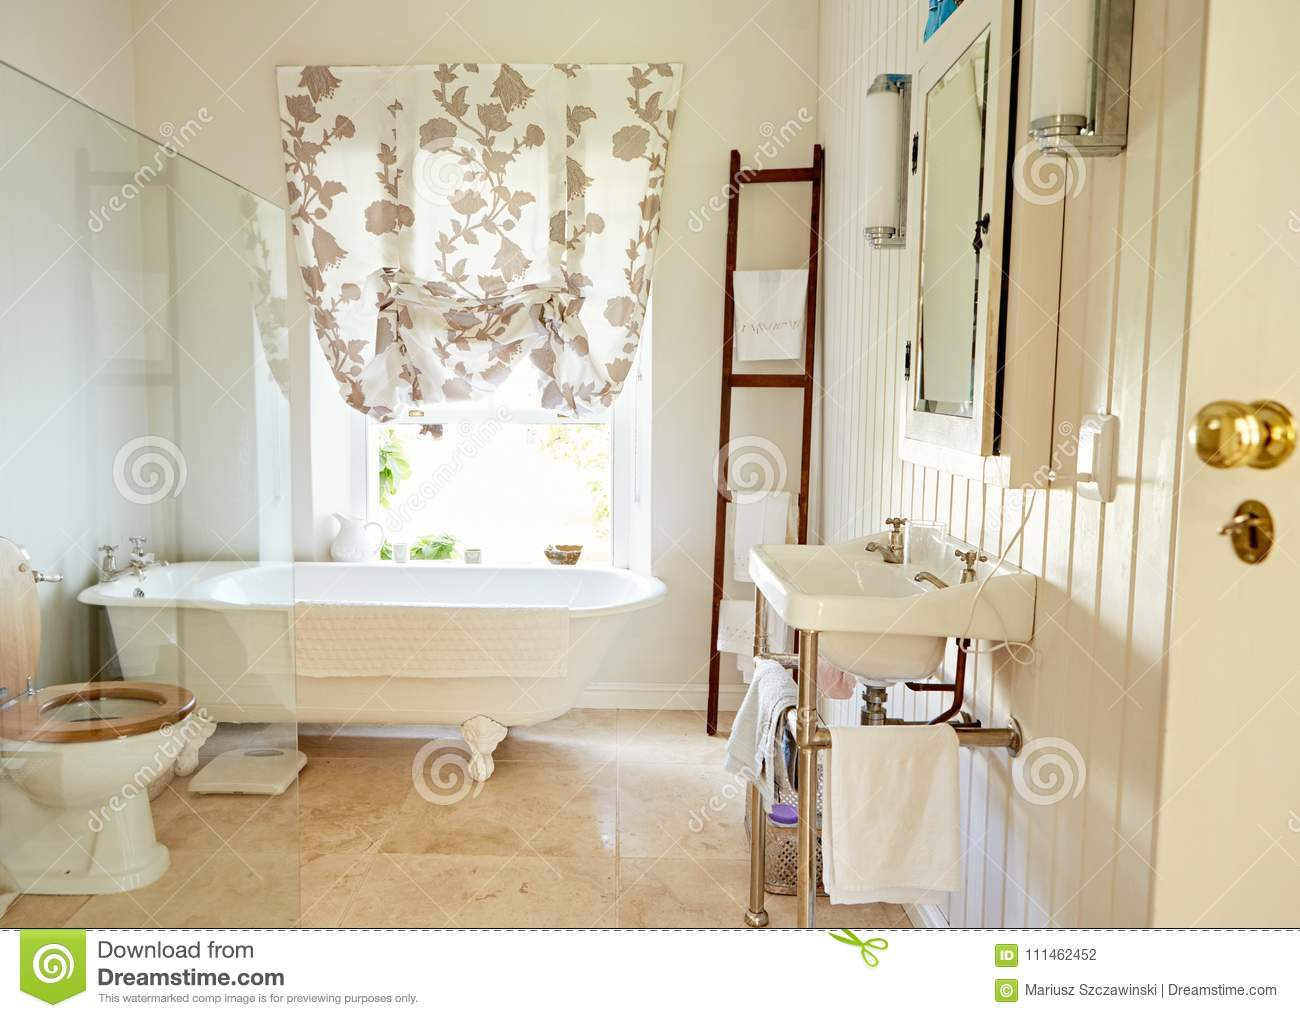 Interior Of A Spacious Country Style Bathroom Stock Photo - Image of ...